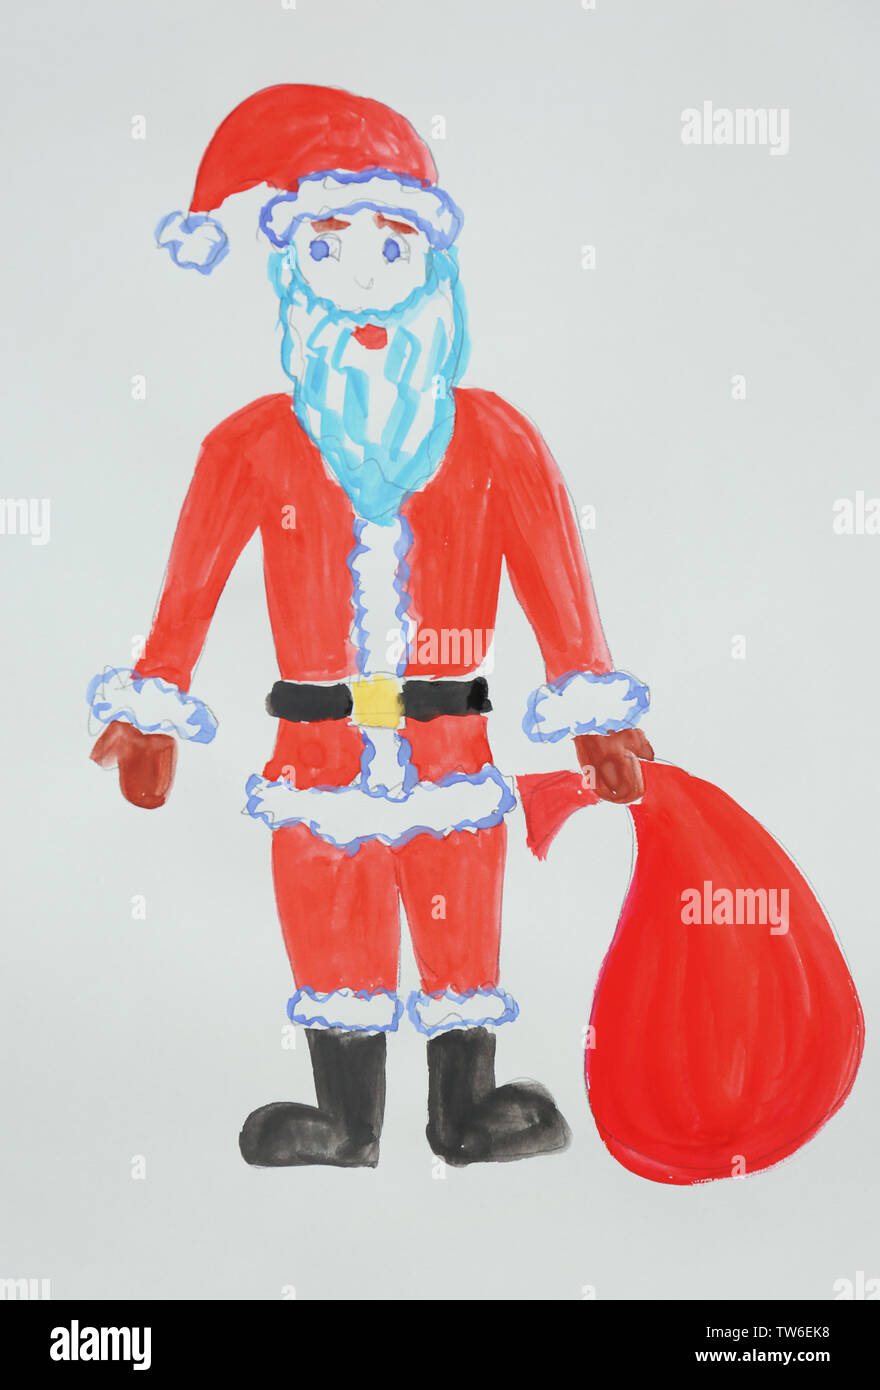 child s painting of santa claus with bag stock photo alamy https www alamy com childs painting of santa claus with bag image256454780 html